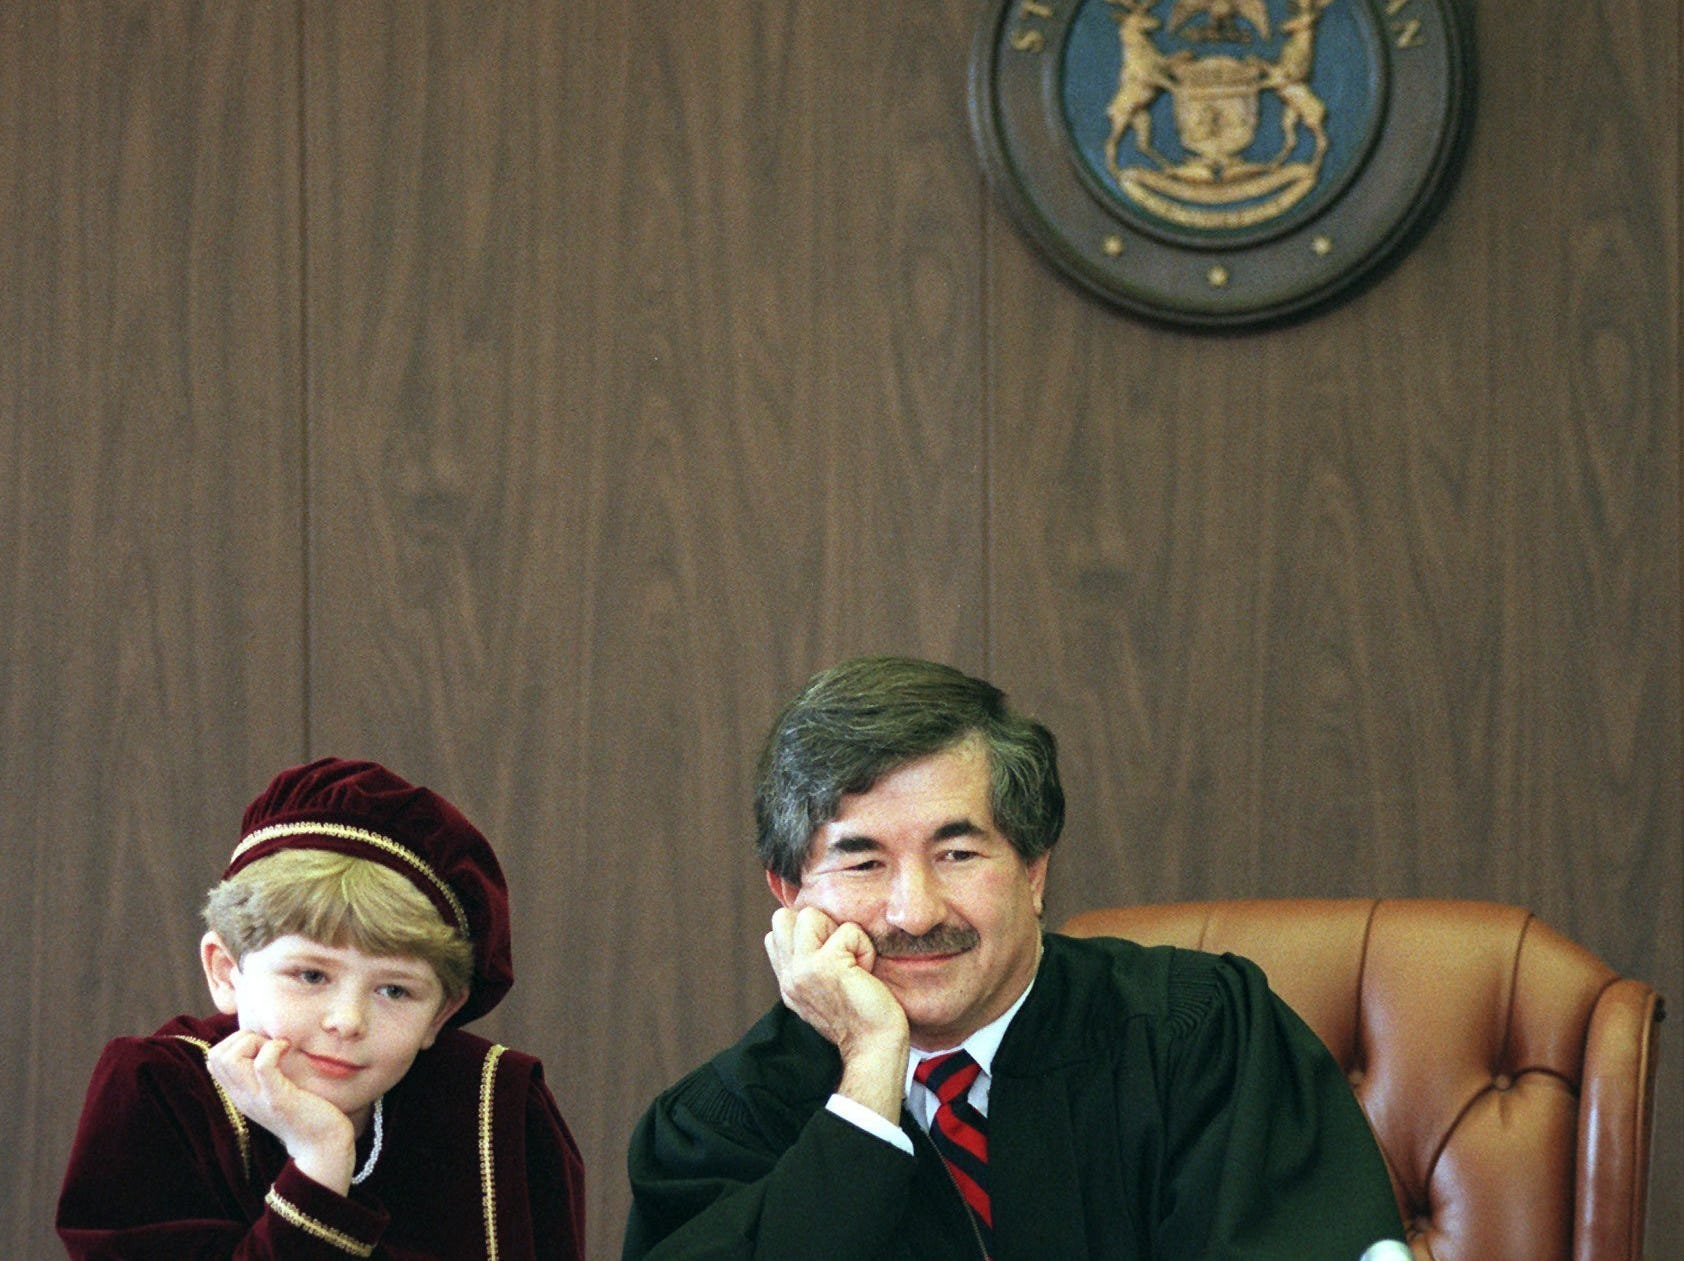 Melissa Bartels, 8, of Haslett and Judge George Economy sit together at the judge's bench during the 11th Annual Christmas Adoptions at the Ingham County Probate and Juvenile Court on Dec. 23, 1998.